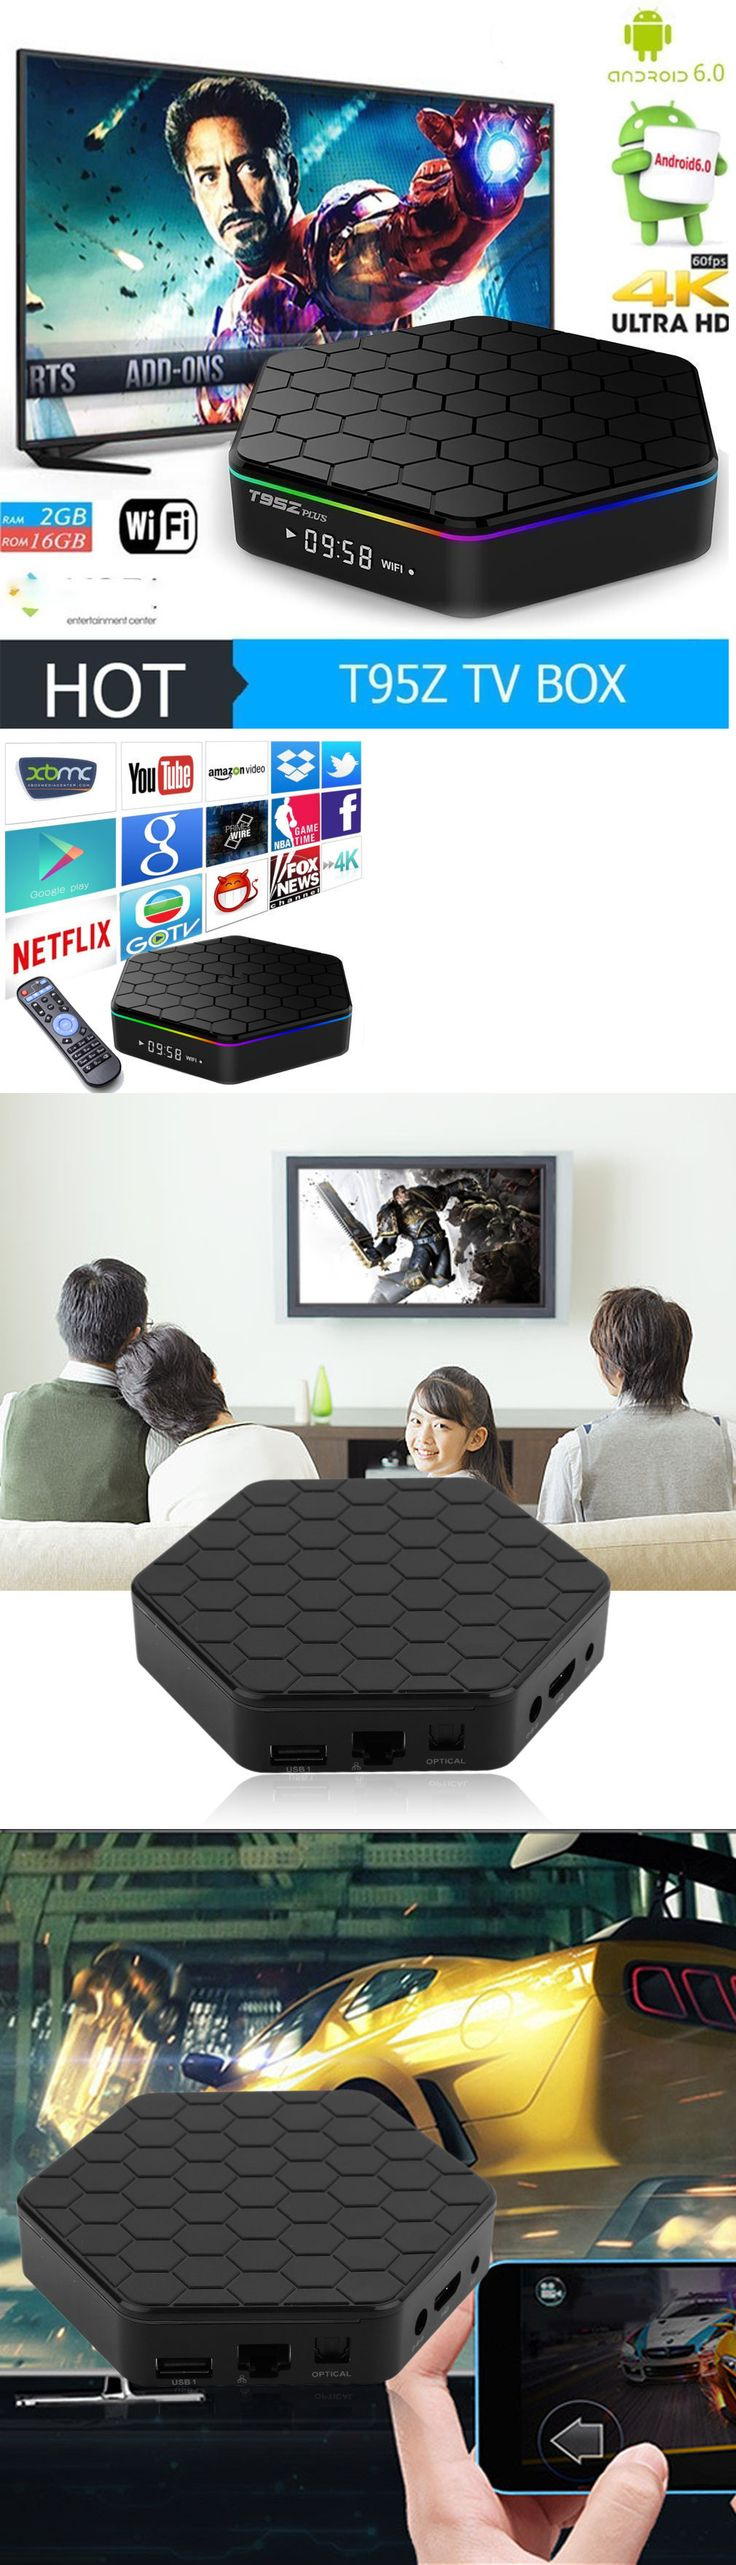 Cable TV Boxes: T95z Plus 16Gb Octa Core 4K Bluetooth Wifi Bluetooth Tv Box Us Big Sale -> BUY IT NOW ONLY: $65.49 on eBay!